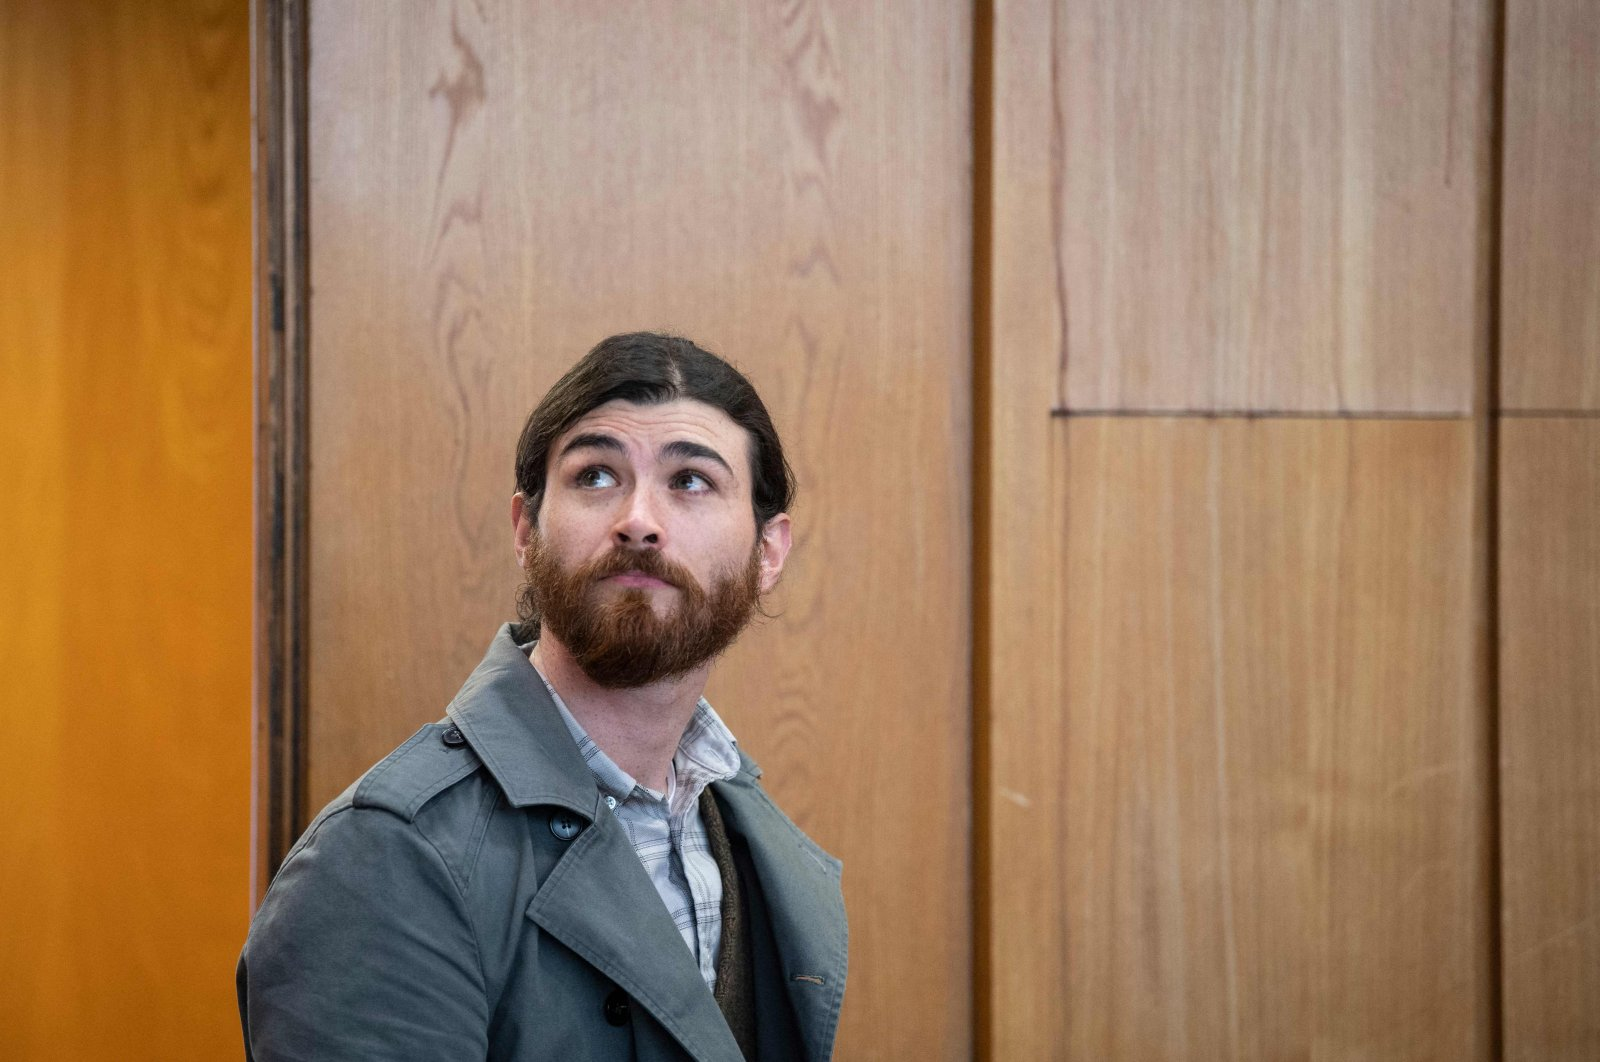 Franco Albrecht, a German soldier who allegedly plotted to attack prominent politicians while posing as a Syrian refugee, arrives at the Higher Regional Court for the start of his trial in Frankfurt am Main, western Germany, May 20, 2021. (AFP Photo)